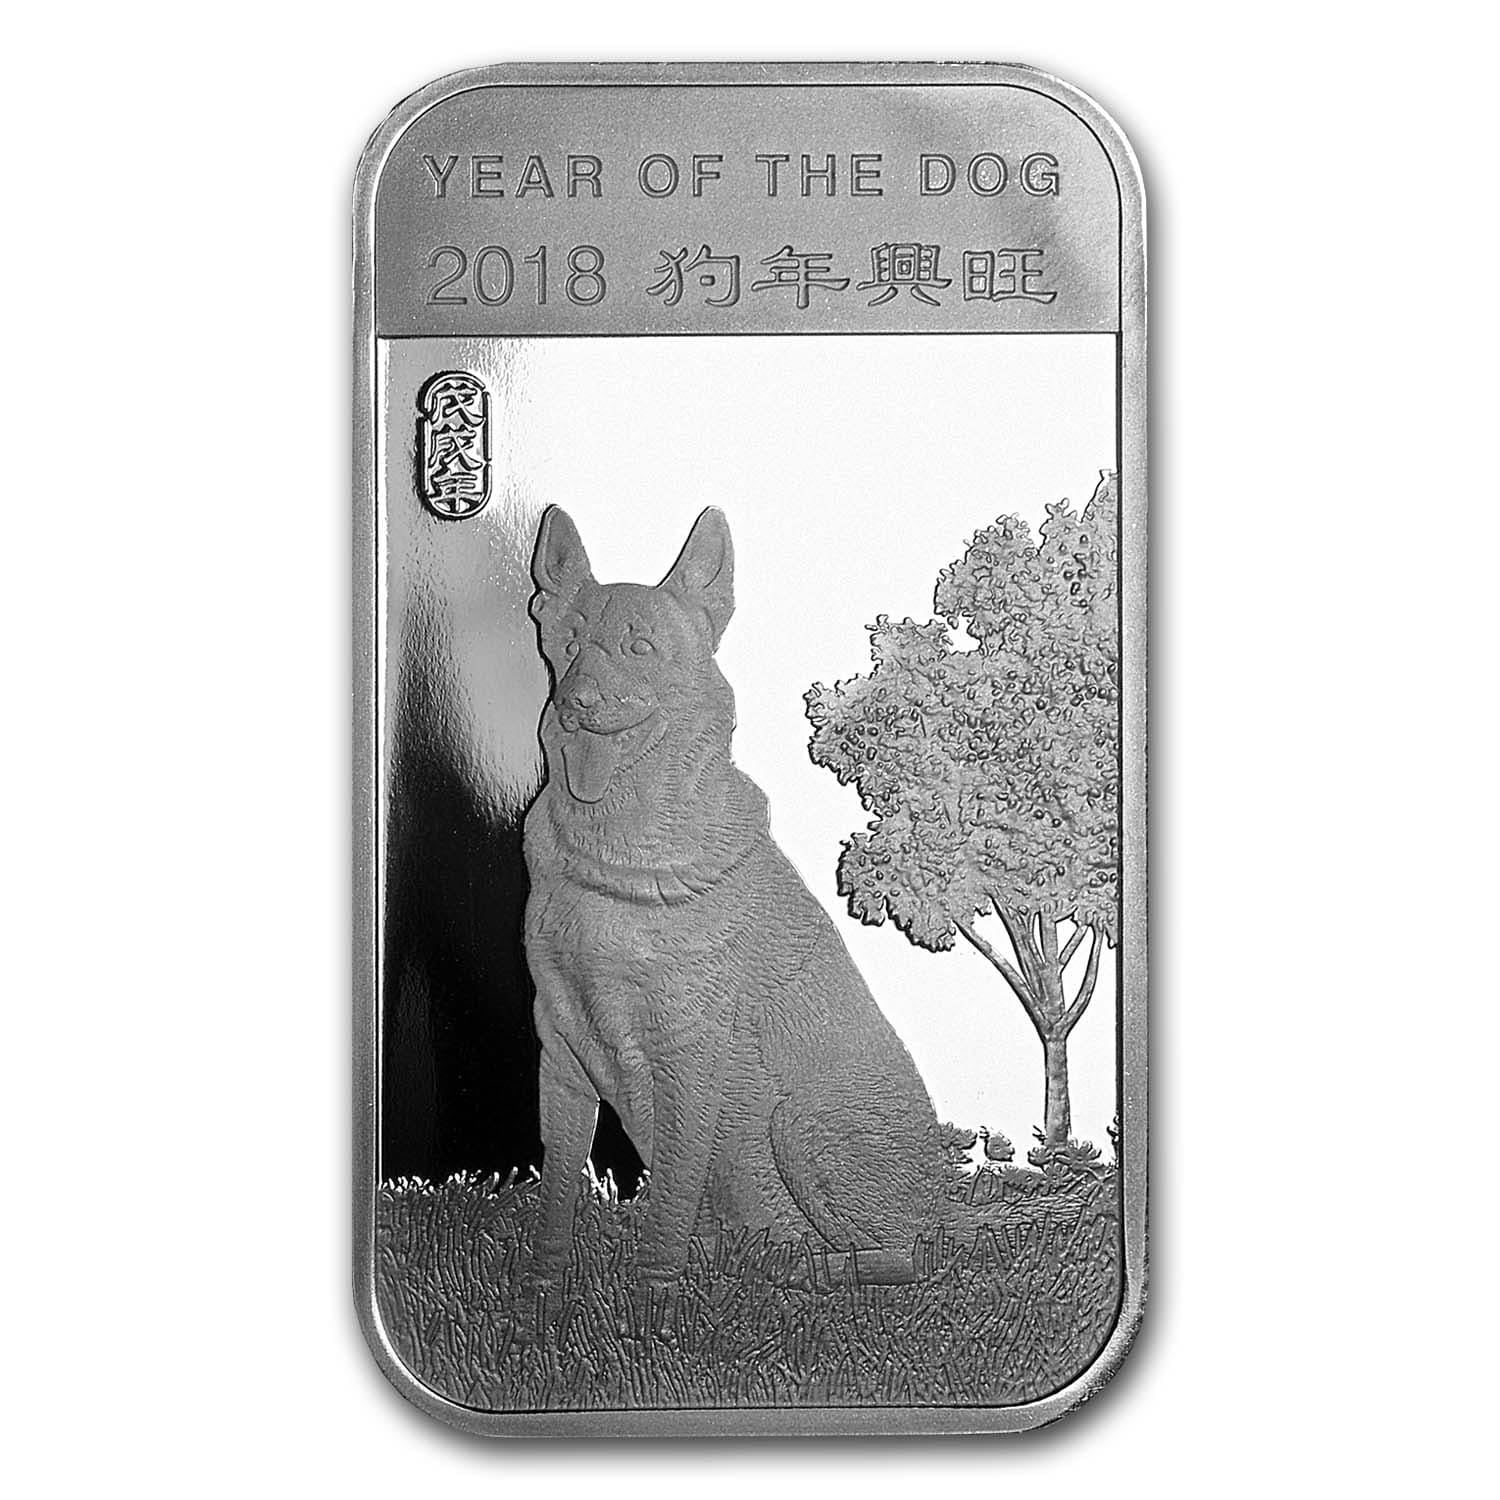 1 oz Silver Bar - APMEX (2018 Year of the Dog)